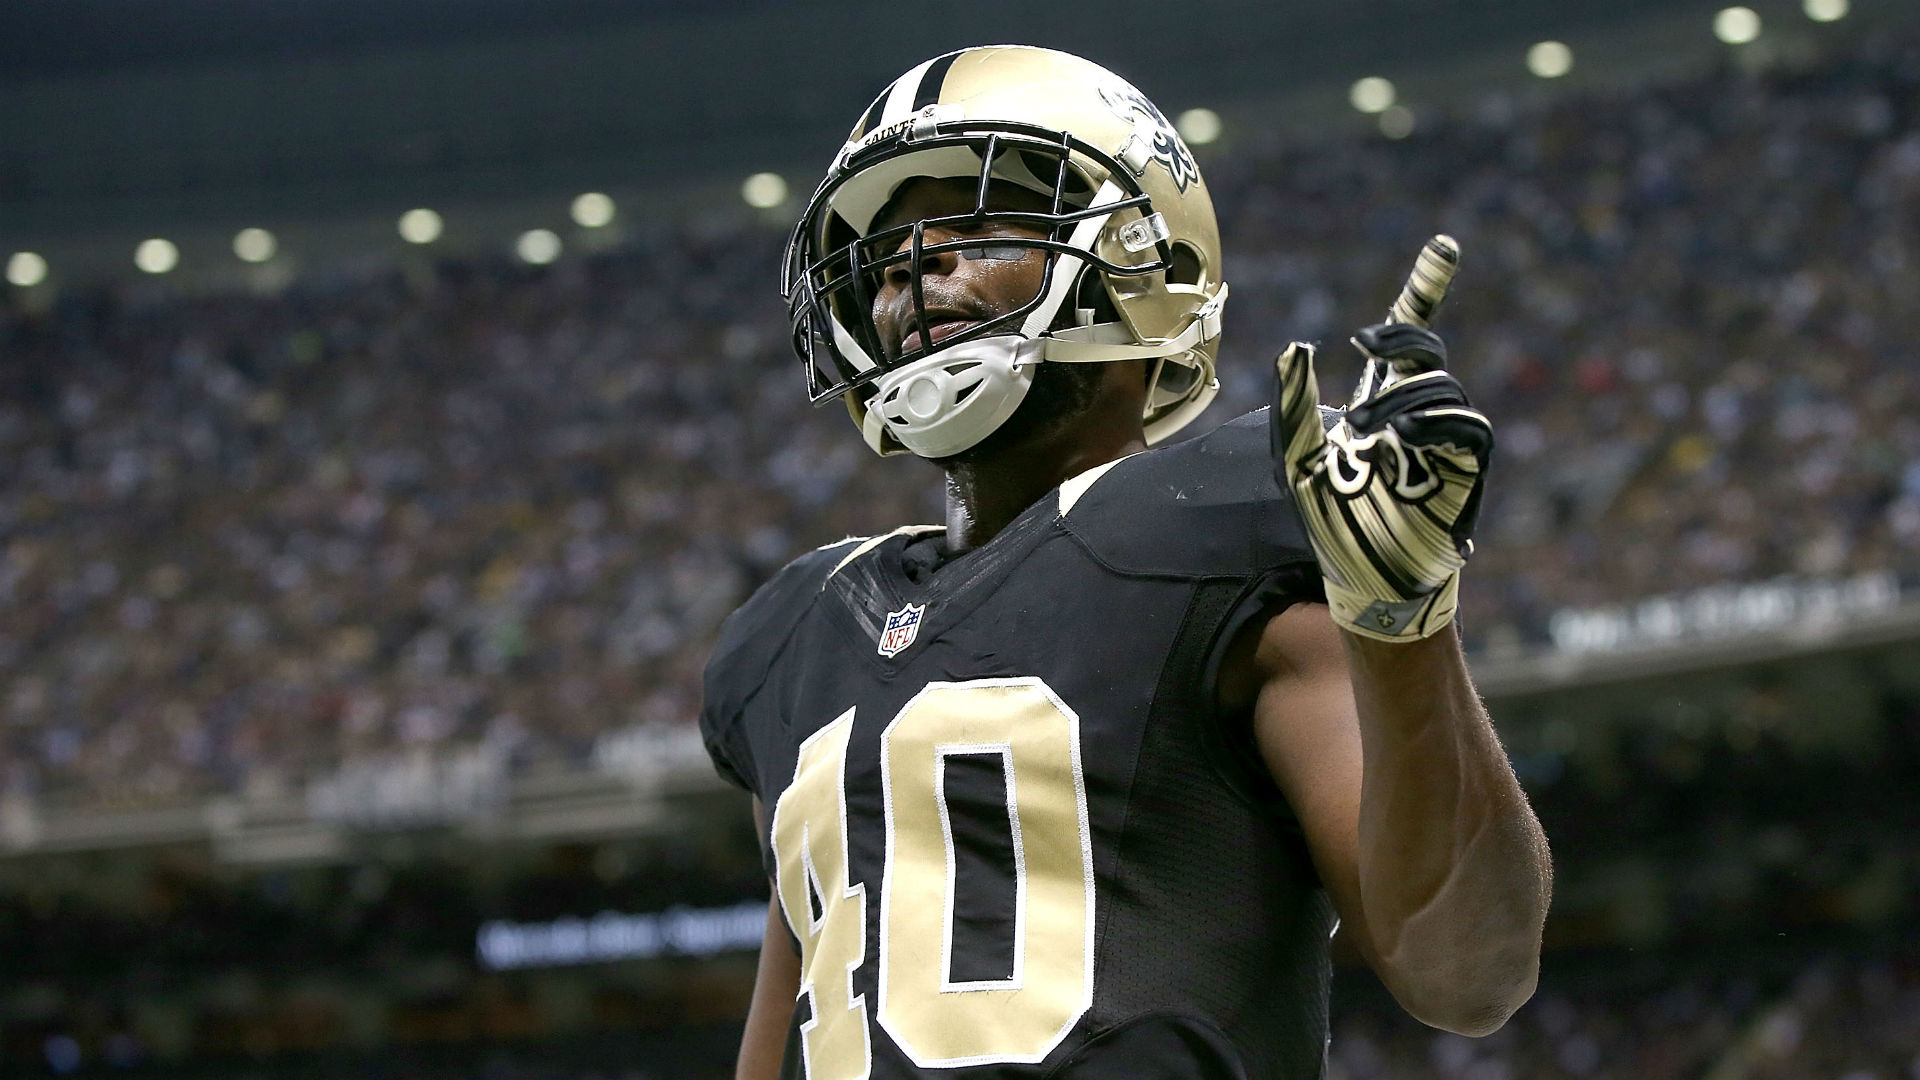 Saints reportedly fire team doctors who misdiagnosed Delvin Breaux injury